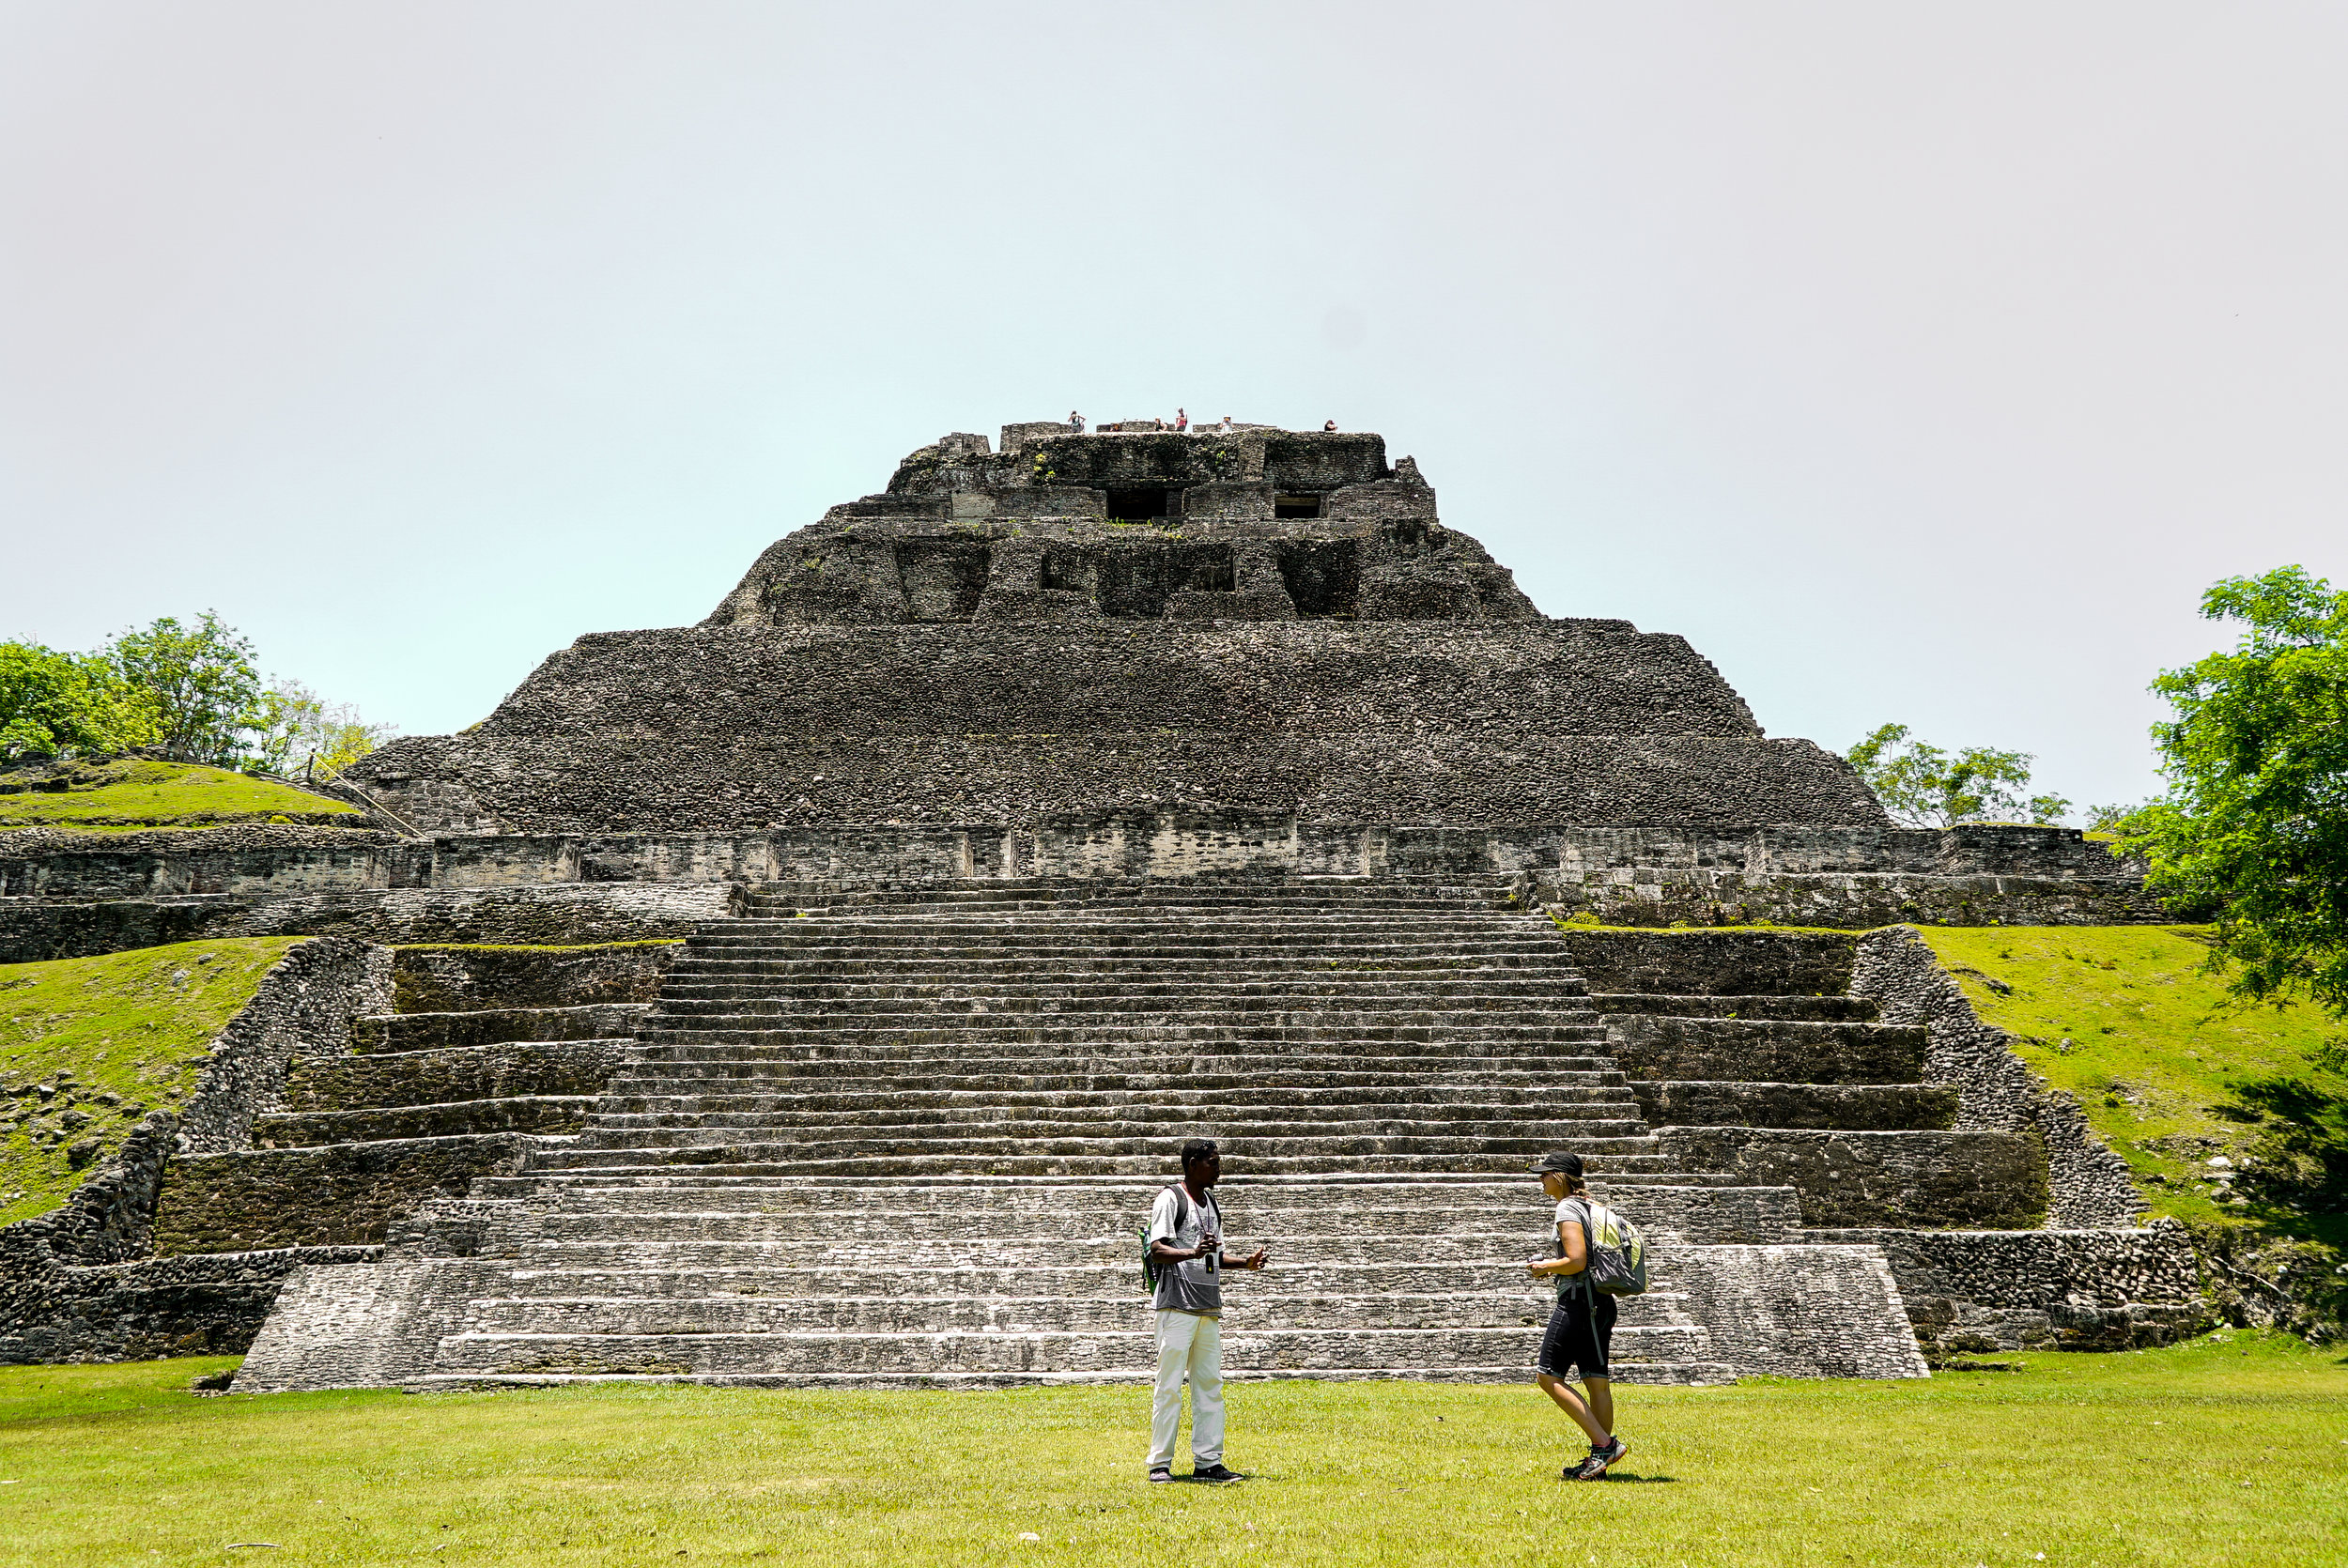 Tour Ancient Maya Sites - From Xunantunich to the Southern Ruins, touring sites from ancient Belizean civilizations is a fun way to learn about local history. This is a full day tour and includes lunch.